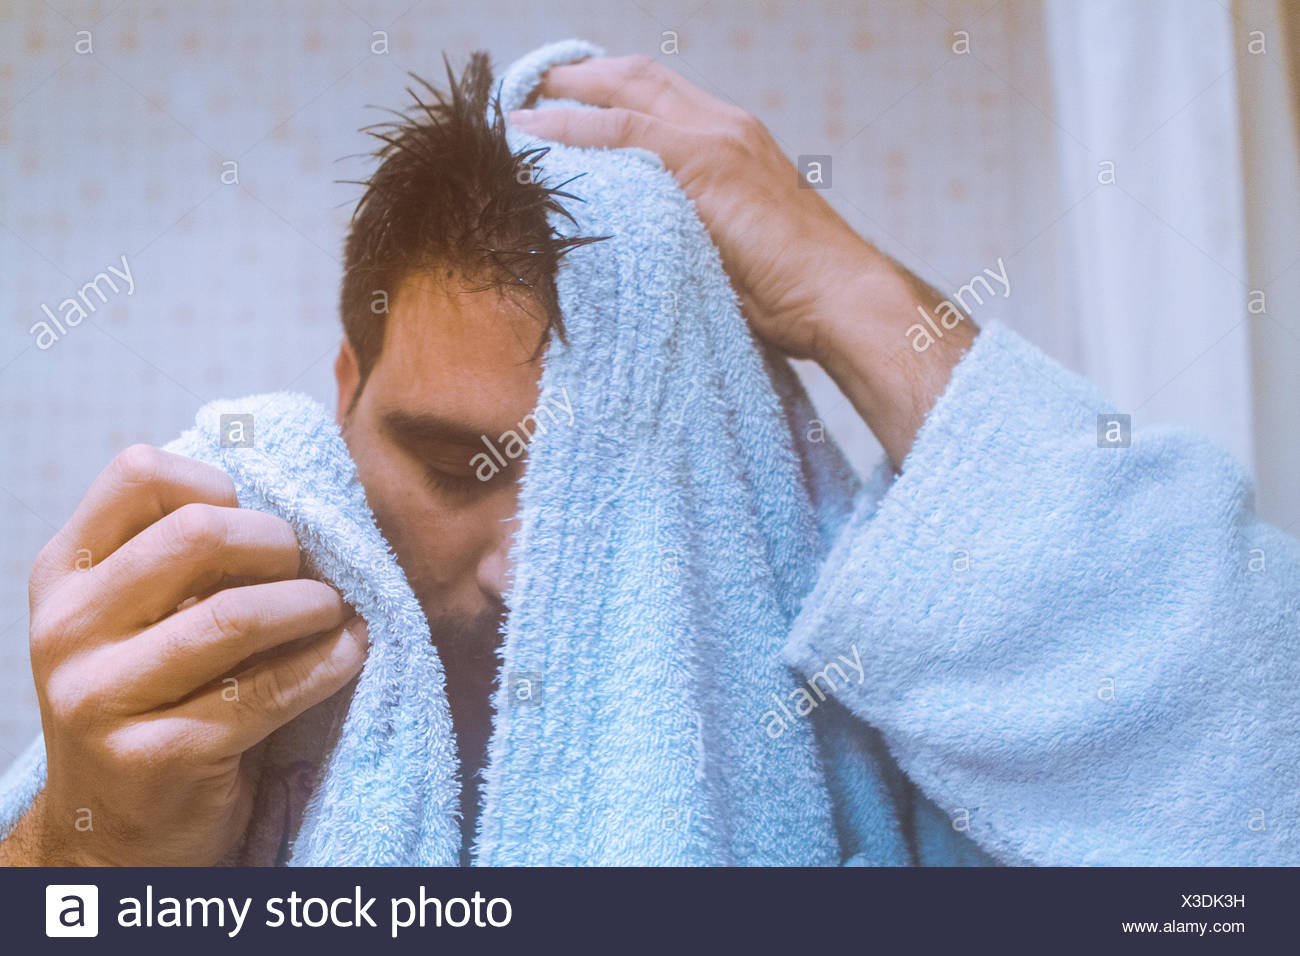 Man drying his face with towel - Stock Image